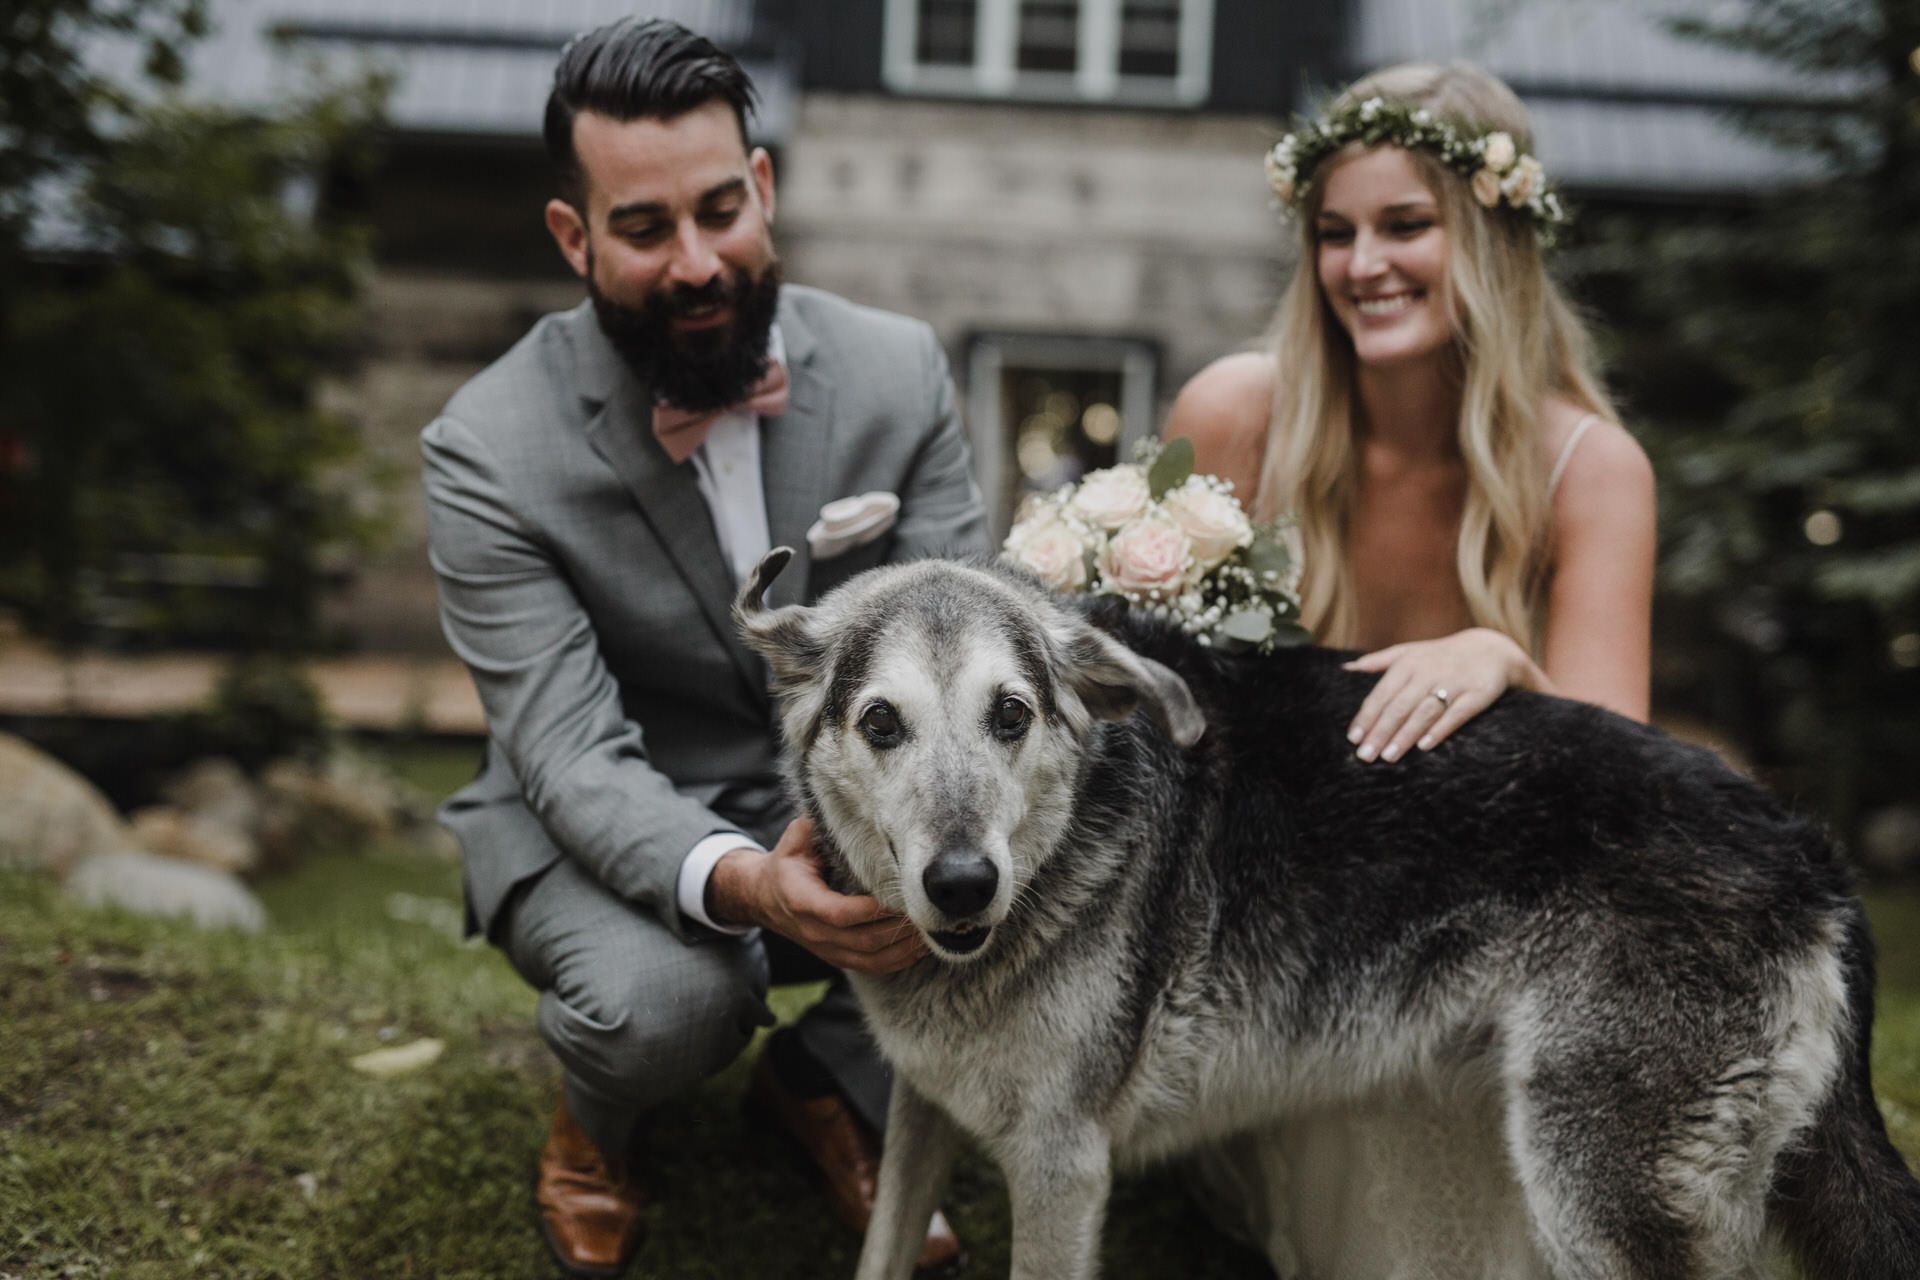 Muskoka Wedding - bride and groom with their dog